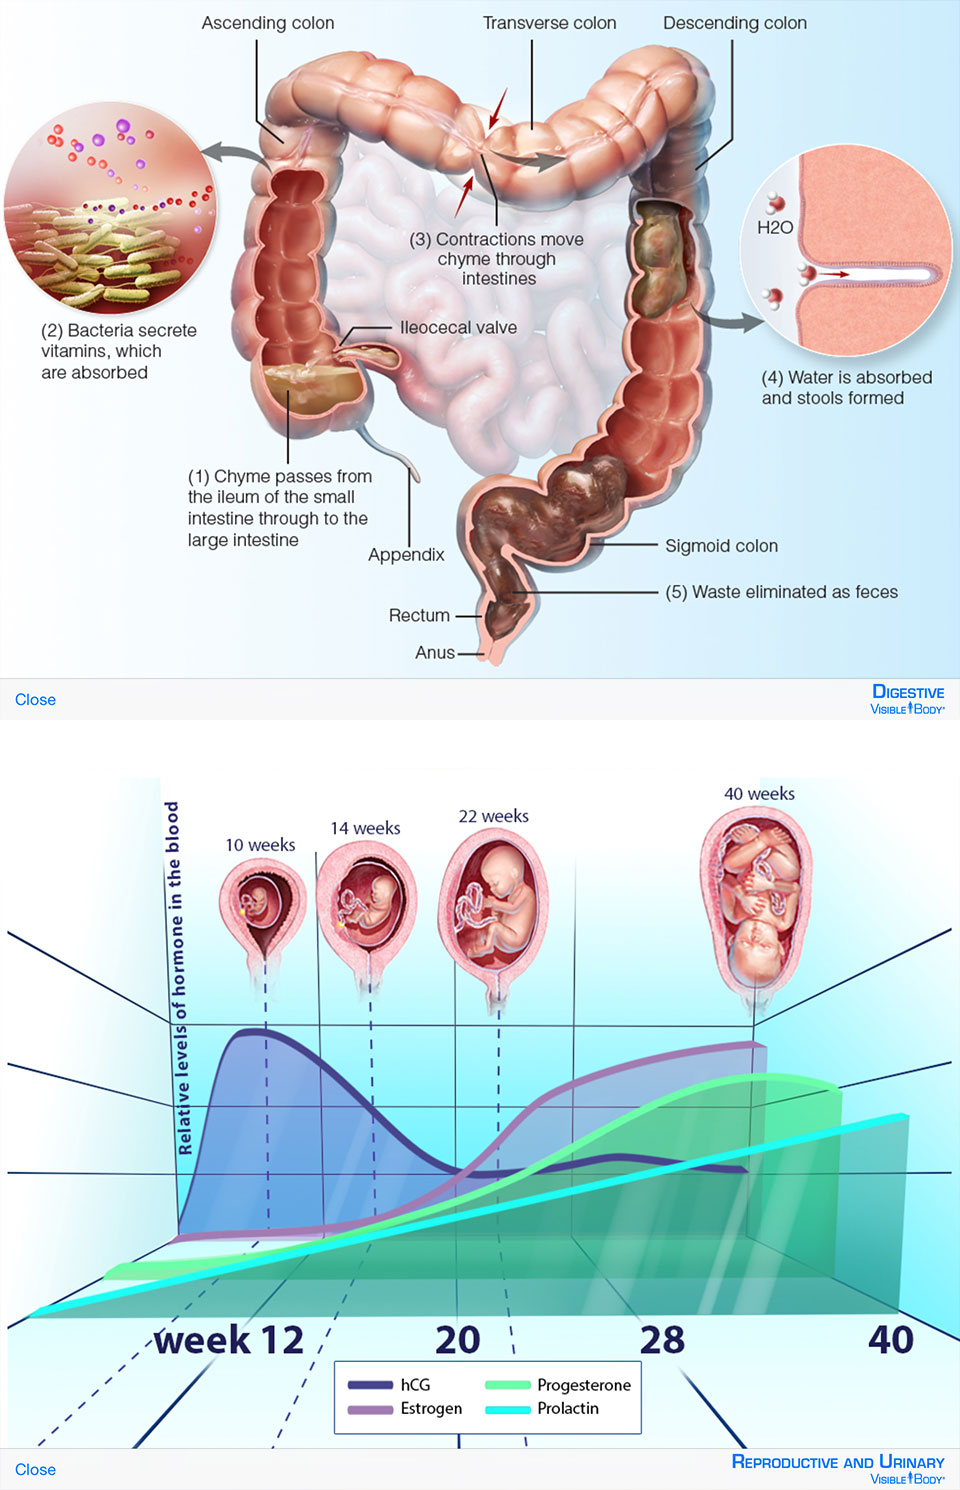 A sample of the illustrations from Digestive, and Reproductive and Urinary